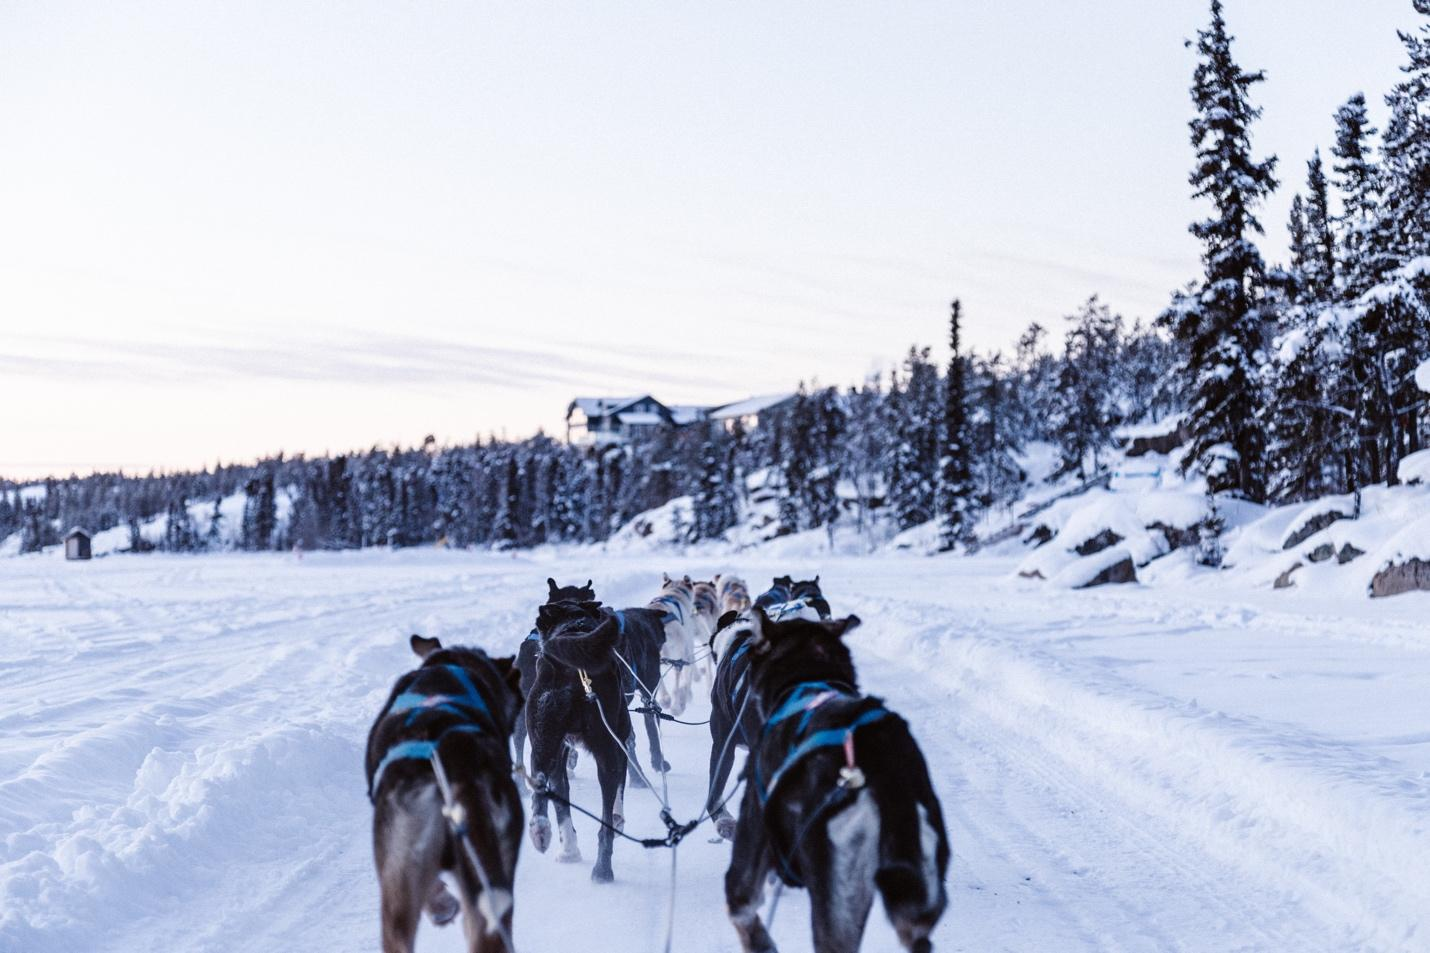 A group of horses pulling a sled through the snow  Description automatically generated with medium confidence